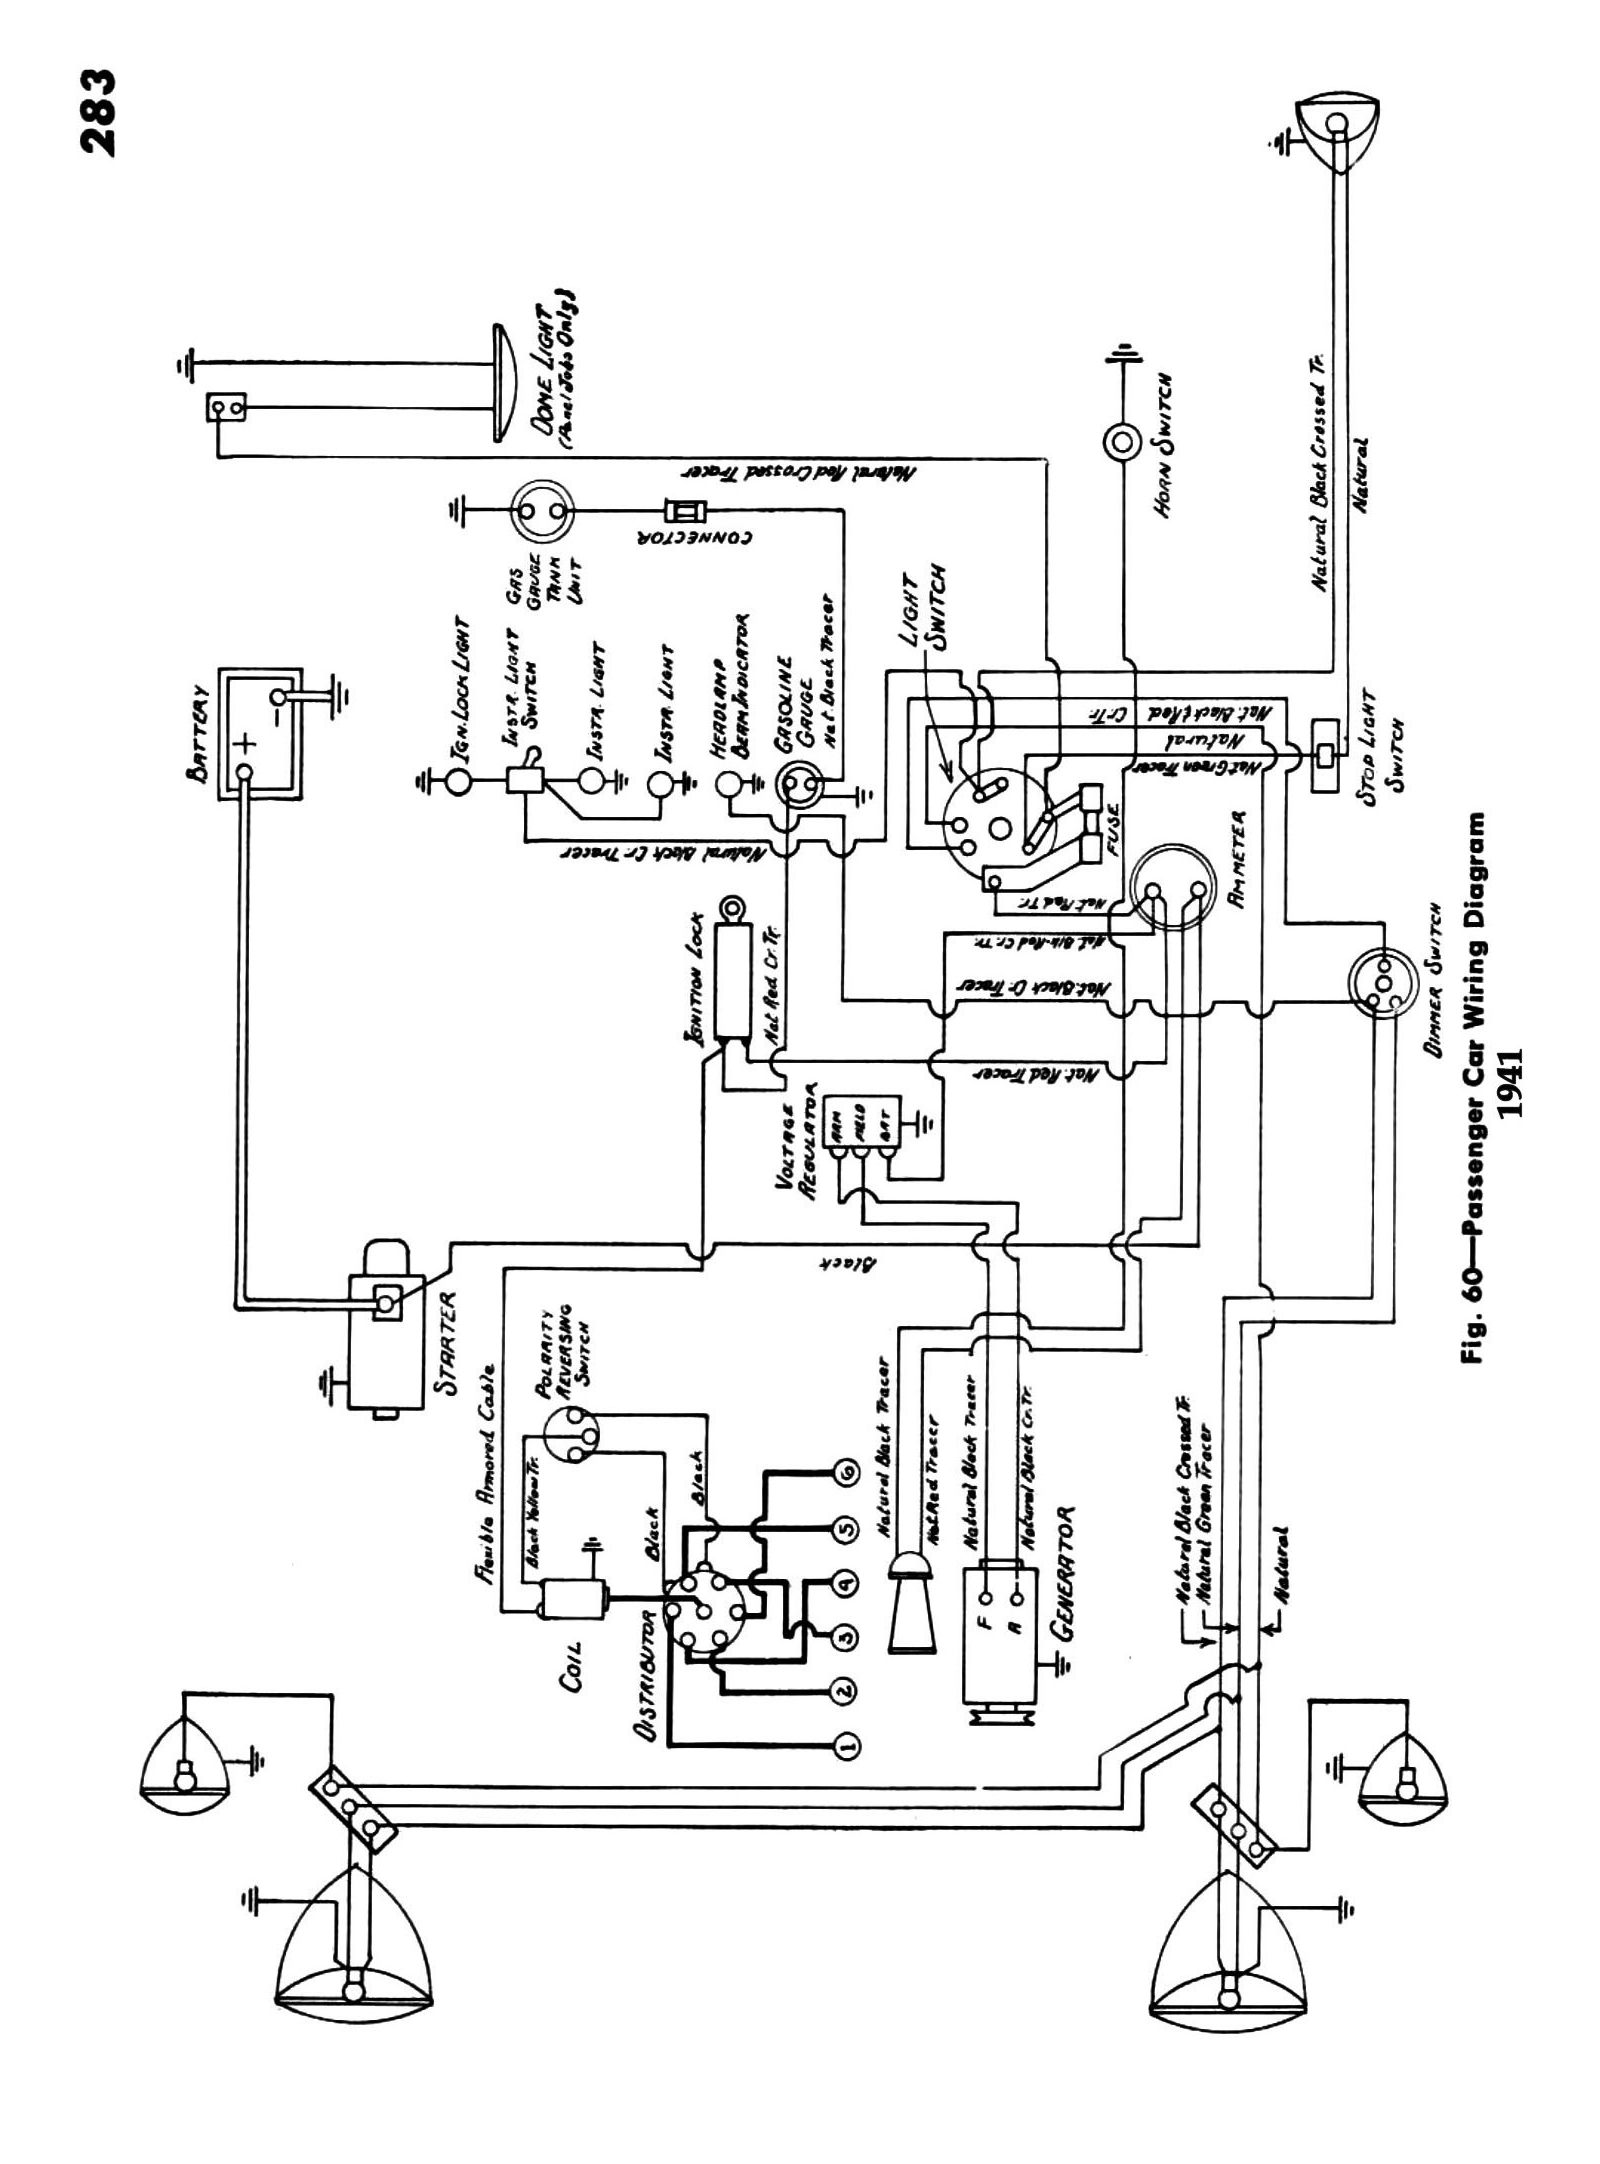 Chevy Wiring diagrams – International Wiring Diagram For 2001